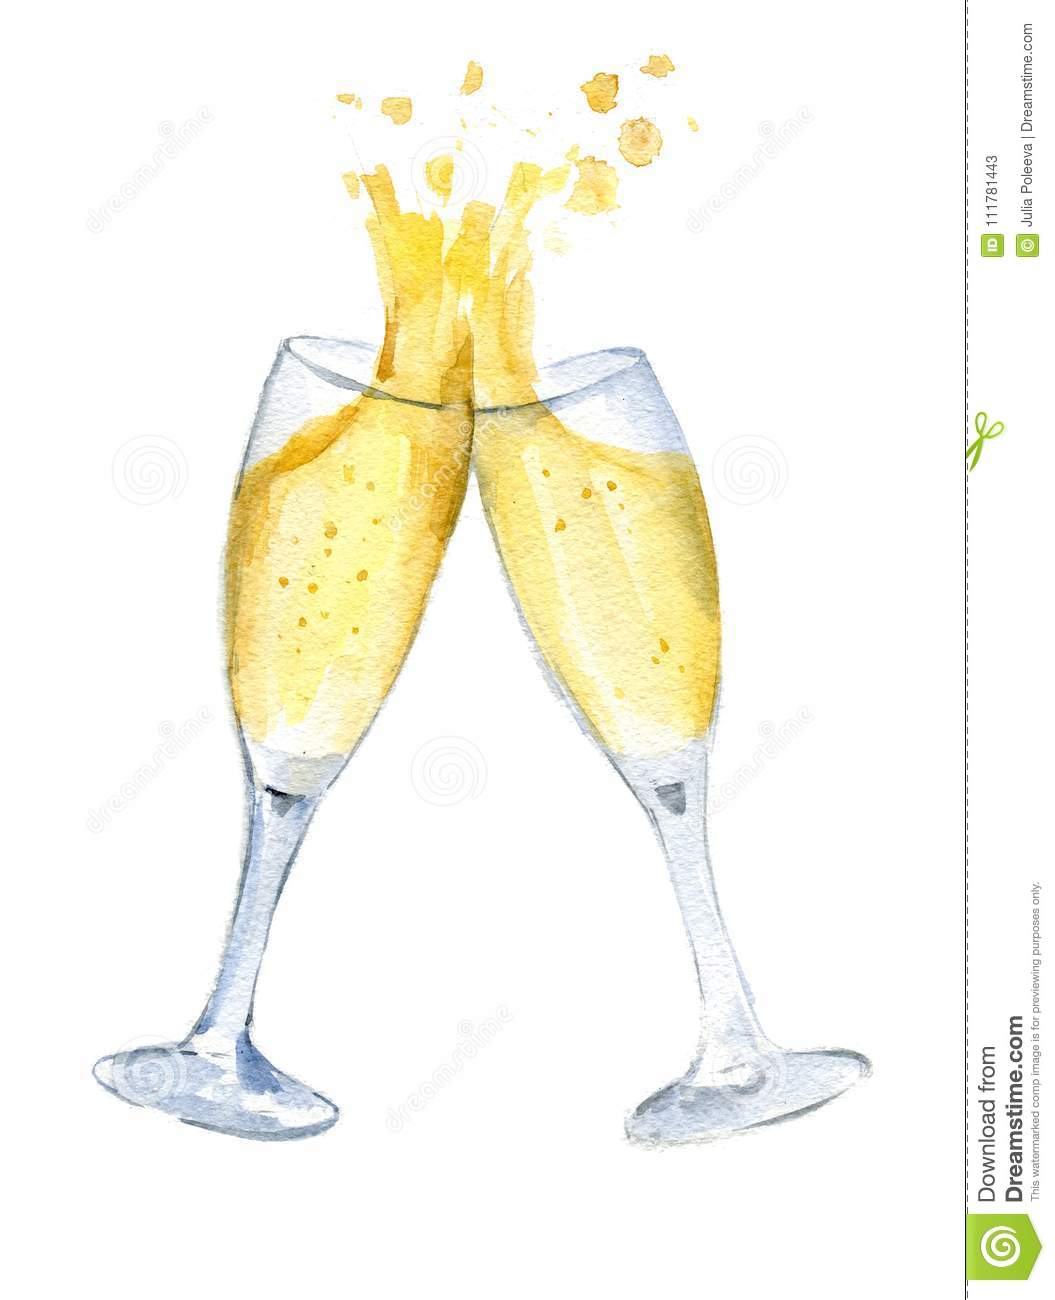 Two glasses with champagne clink glasses with a splash. New year. Watercolor. Isolated.